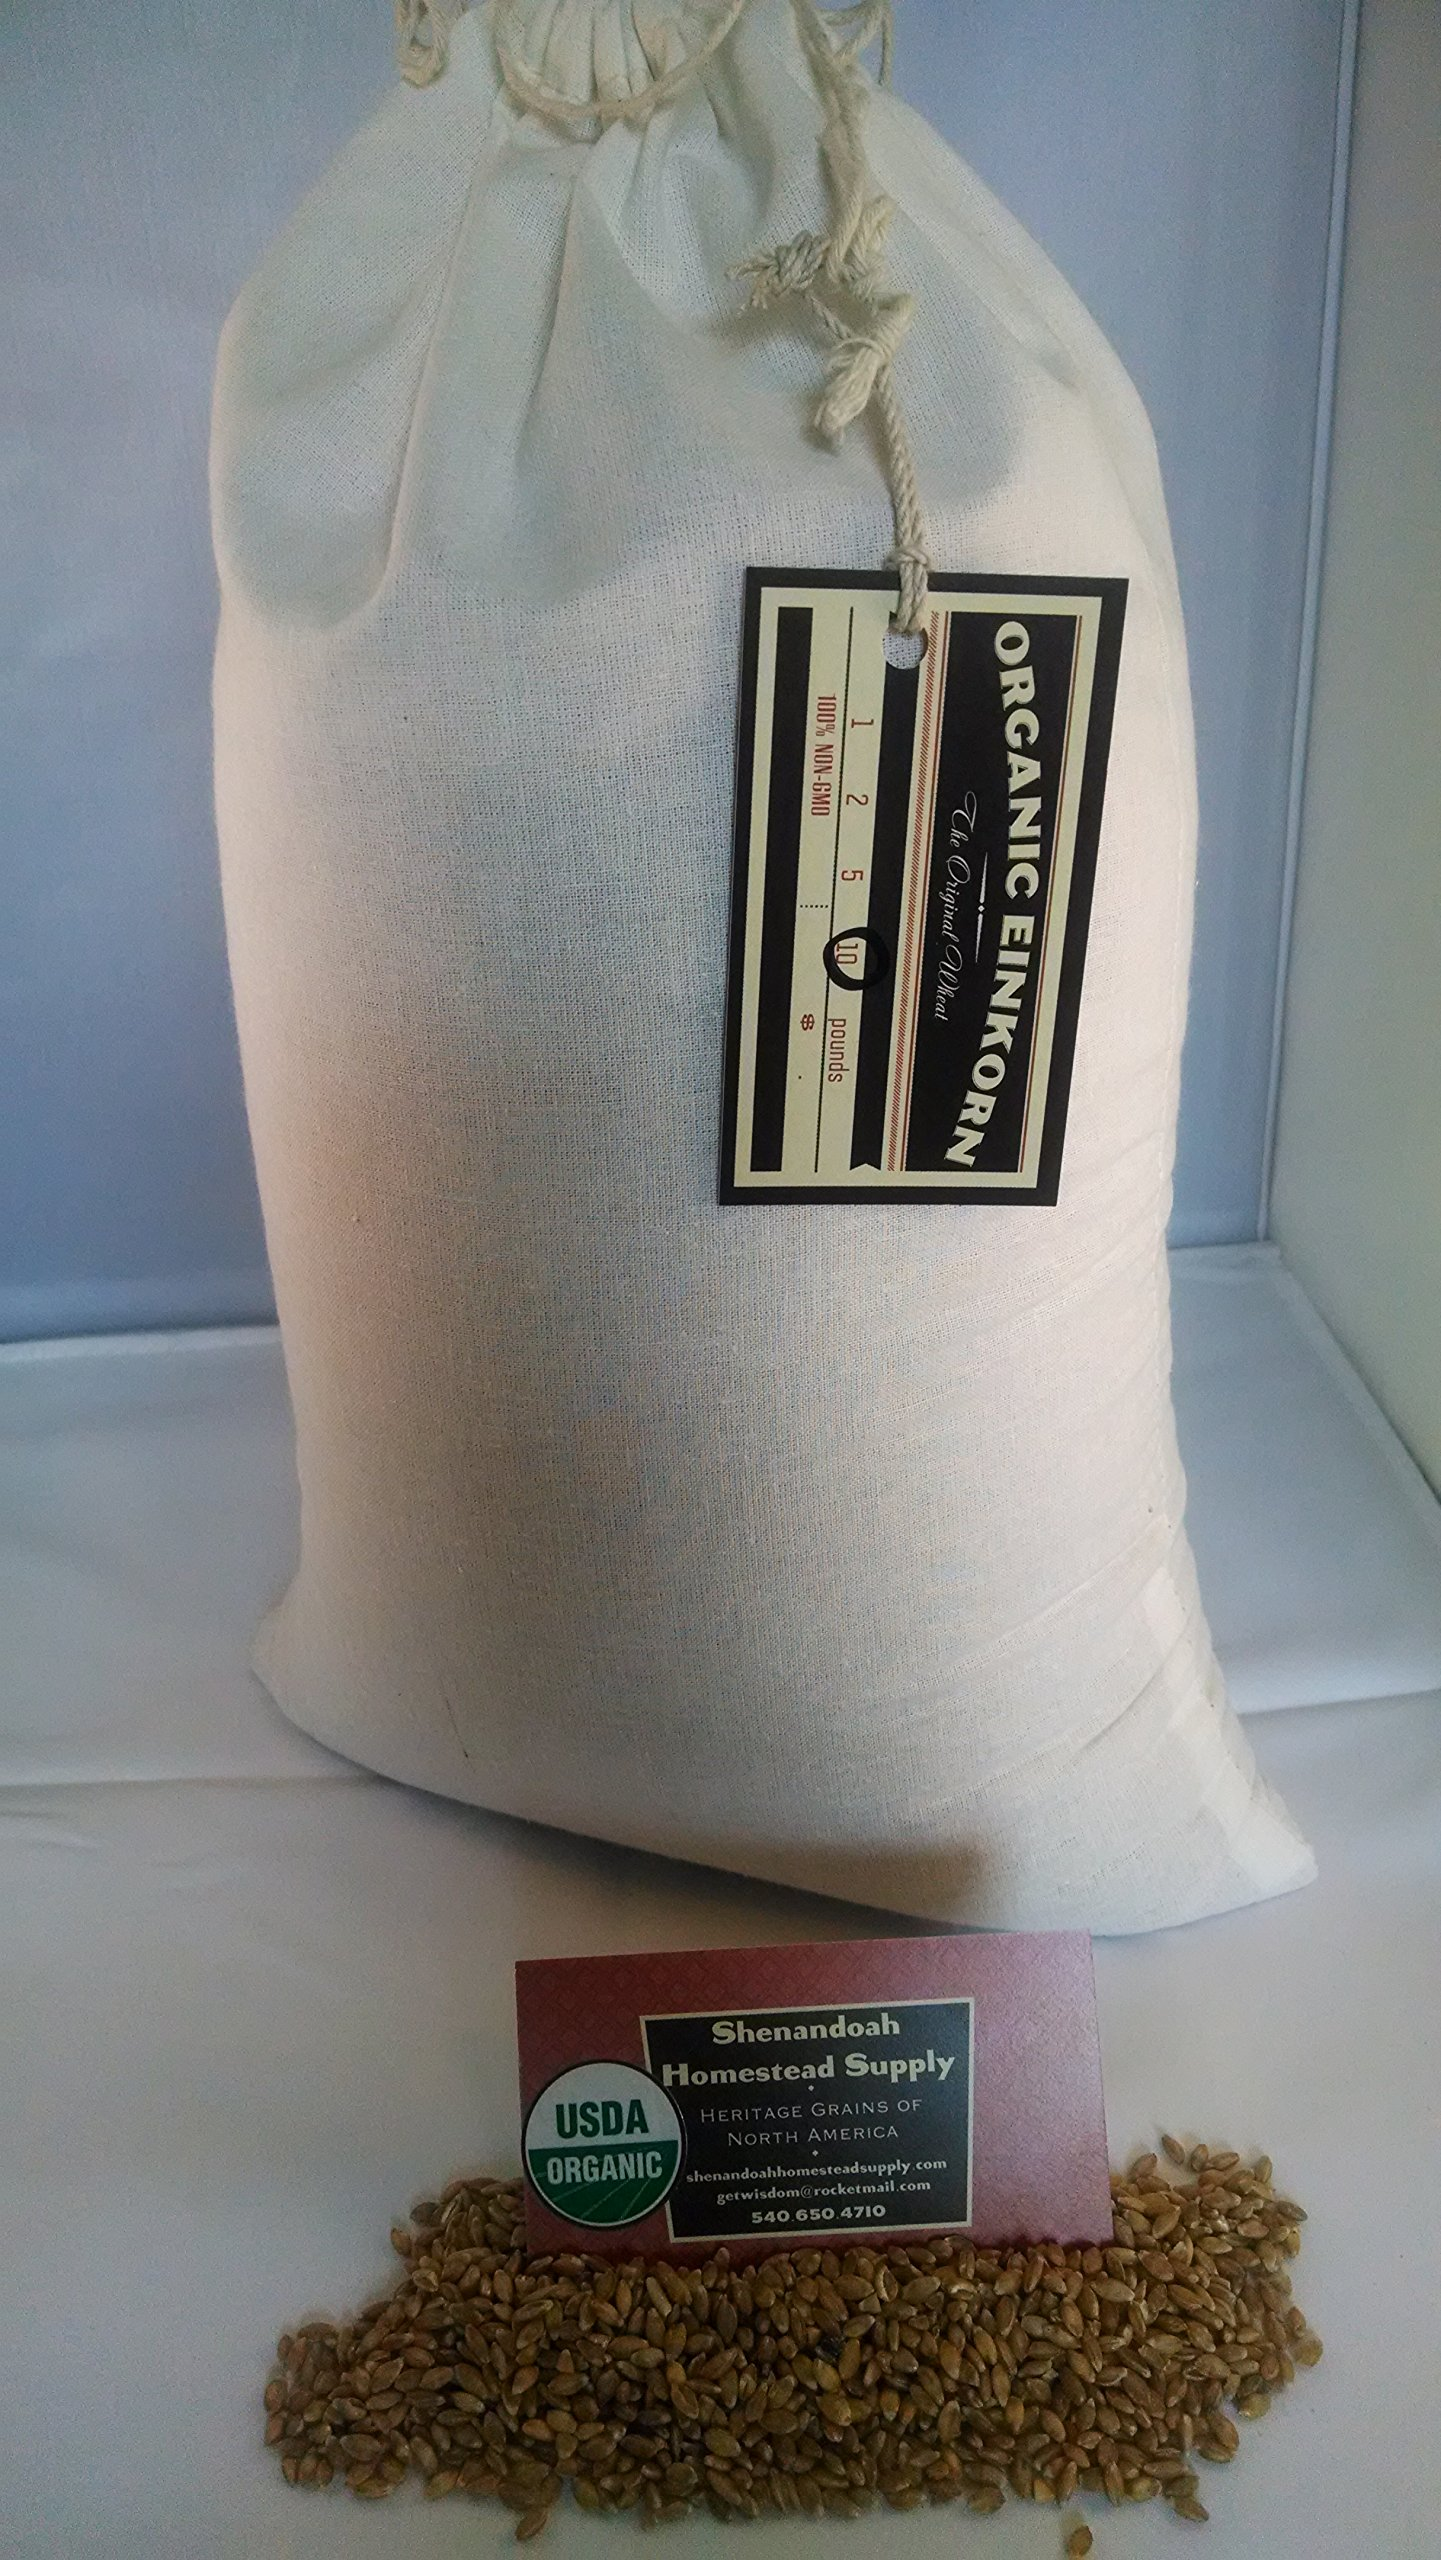 Organic Whole Grain Einkorn Flour, Fresh Stone-Ground & USA Grown, Heritage Grains of Shenandoah- great for gluten issues (10 pounds)